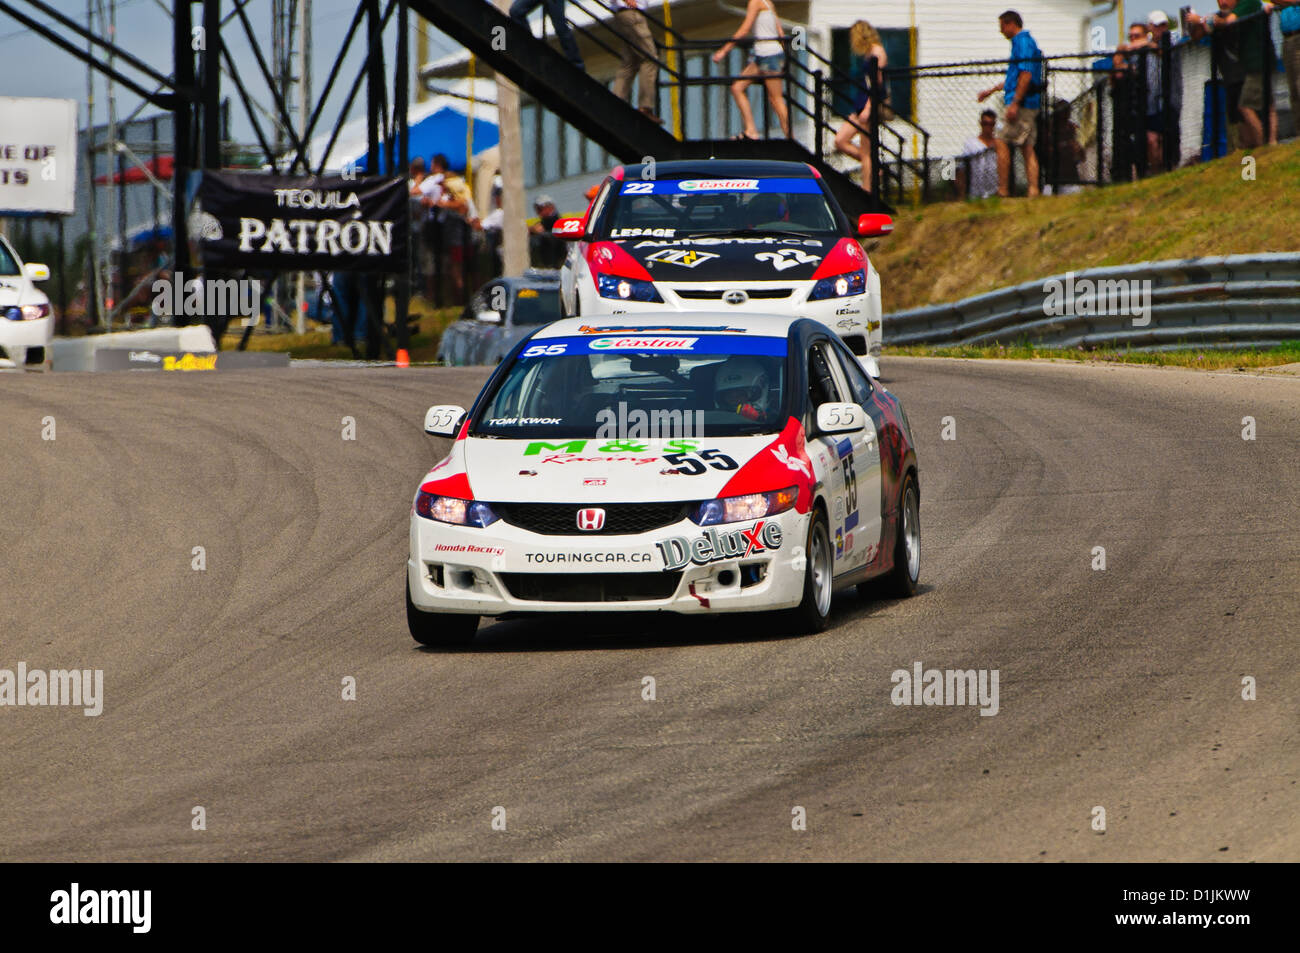 A Honda Civic competes in the  CTCC Canadian Touring Car Championship at the 2011 Mobile-1 Grand Prix Mosport Stock Photo